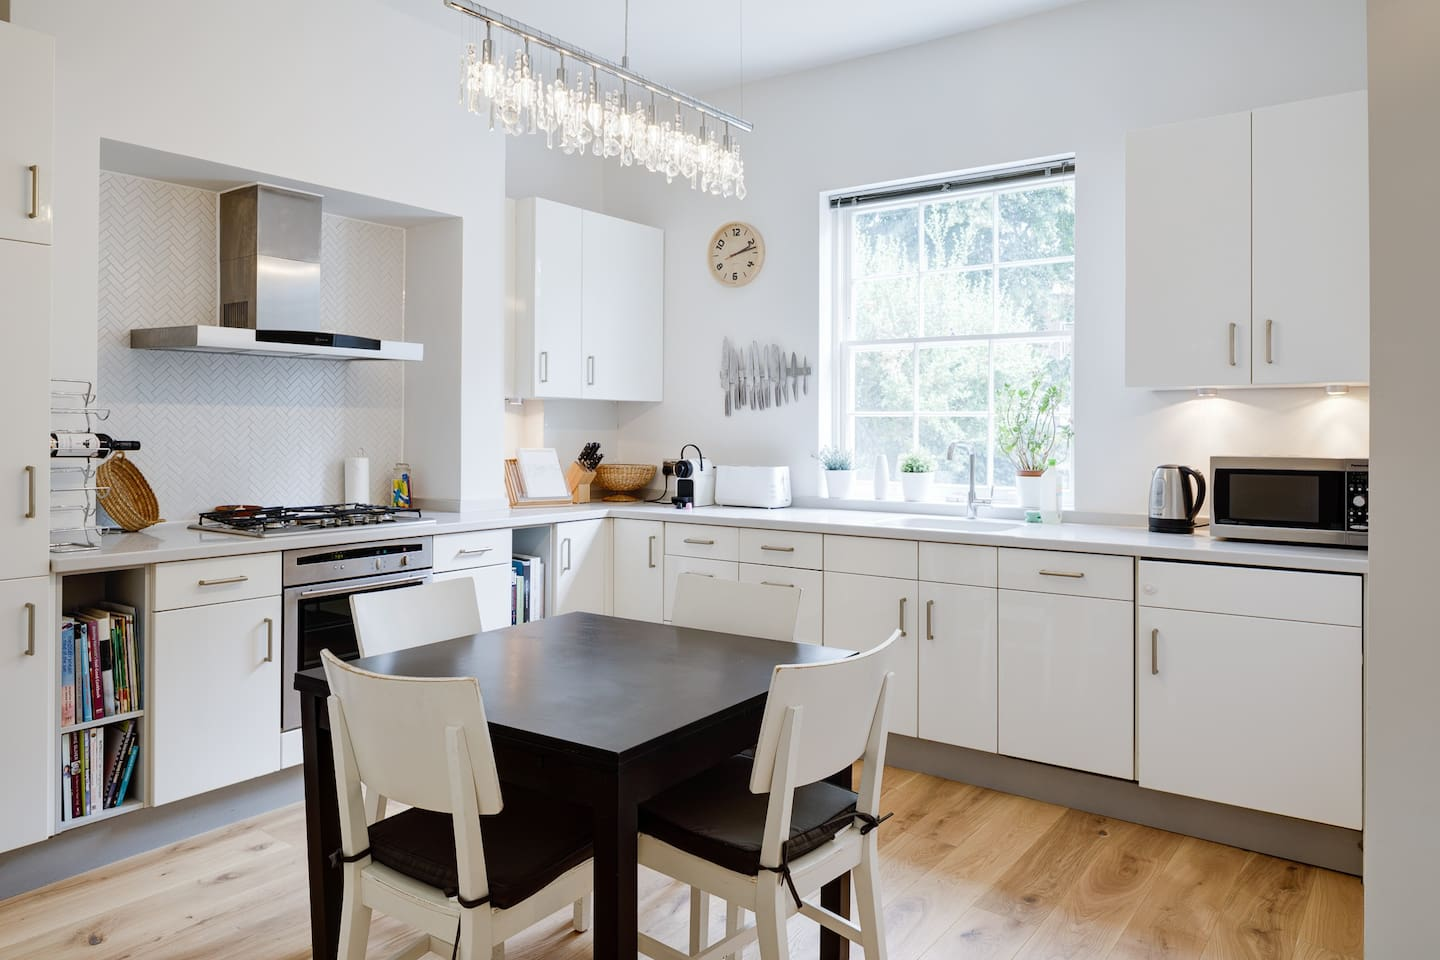 Large, light eat in kitchen - great for home cooking. Kitchen has all mod cons - dishwasher, wide oven, gas hobs, full size fridge/freezer, microwave, Nespresso coffee machine, toaster, kettle.